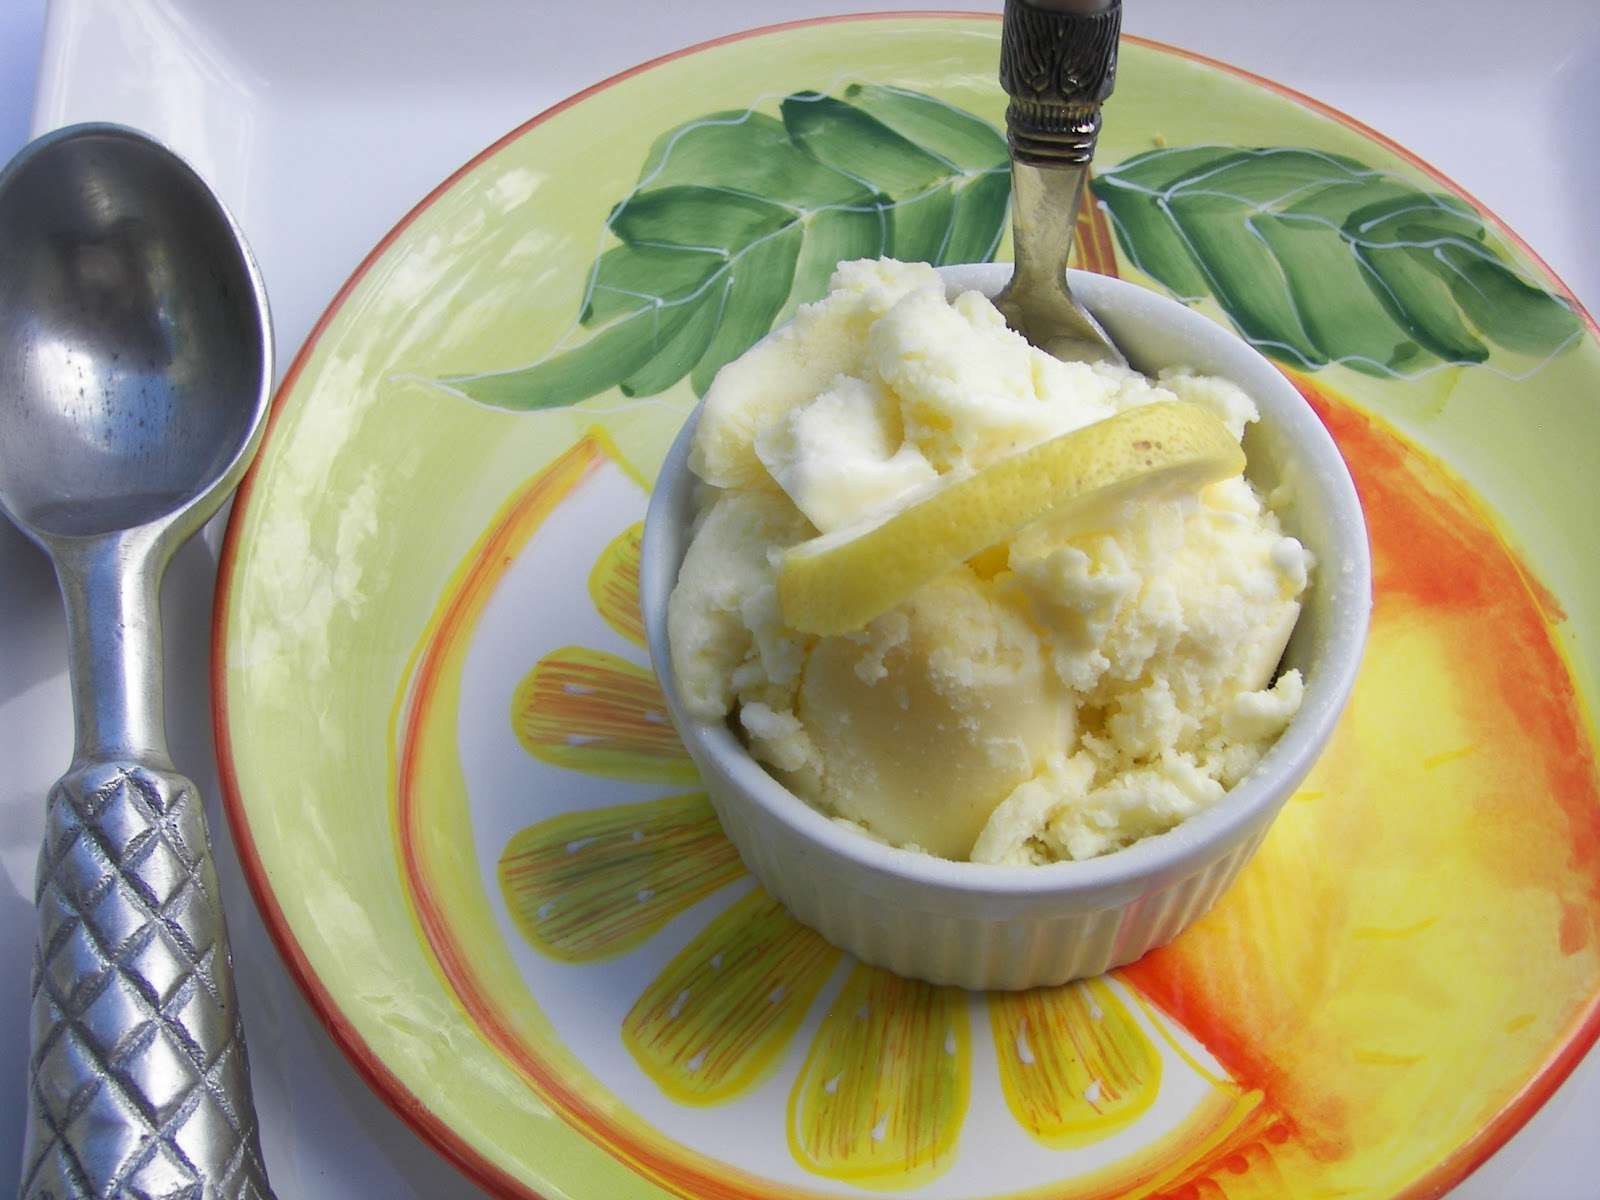 Red Couch Recipes: Scrumptious Lemon Lime Gelato